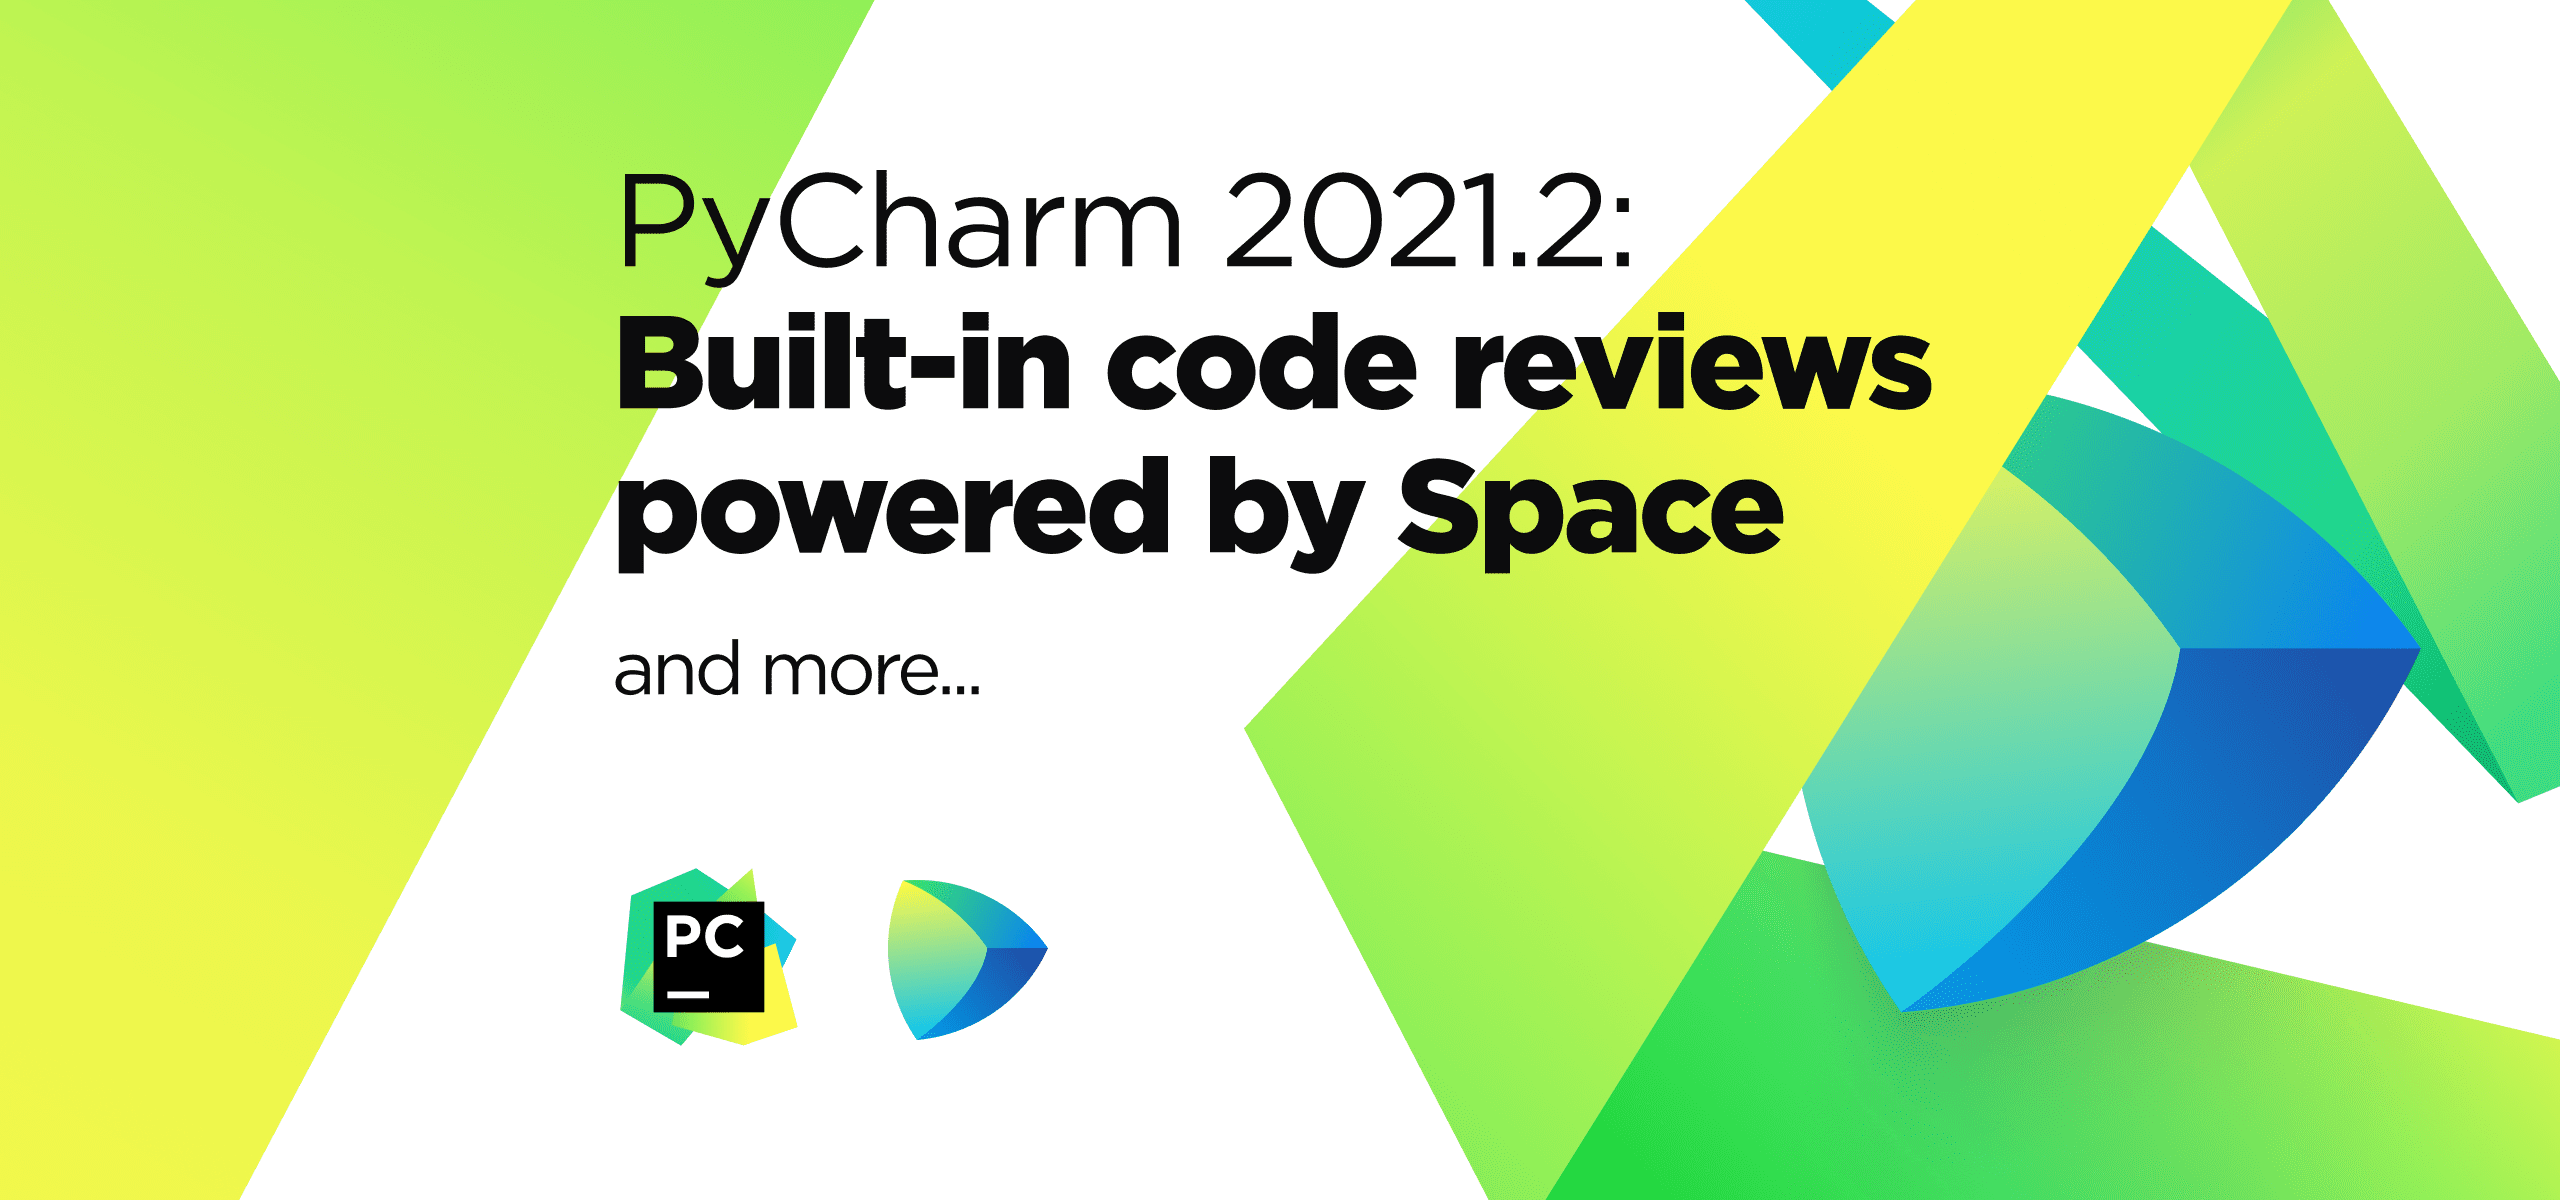 PyCharm 2021.2: Built-in code reviews powered by Space